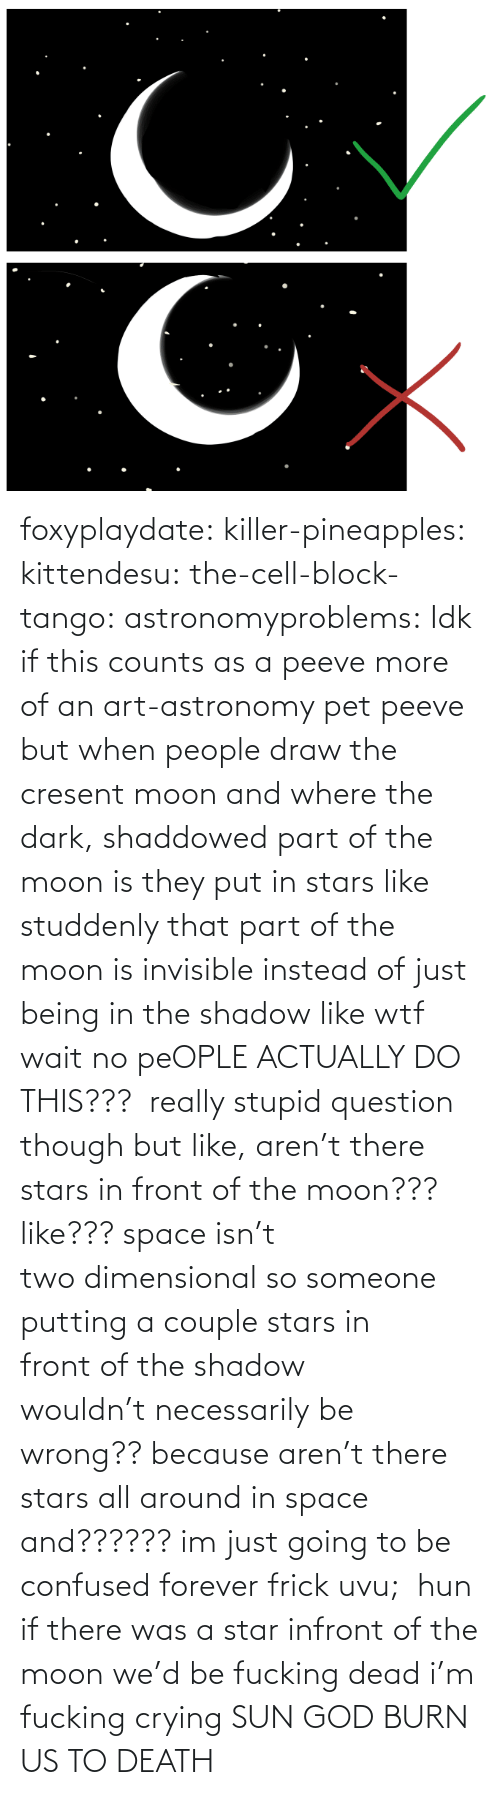 confused: foxyplaydate: killer-pineapples:  kittendesu:  the-cell-block-tango:  astronomyproblems:  Idk if this counts as a peeve more of an art-astronomy pet peeve but when people draw the cresent moon and where the dark, shaddowed part of the moon is they put in stars like studdenly that part of the moon is invisible instead of just being in the shadow like wtf  wait no peOPLE ACTUALLY DO THIS???   really stupid question though but like, aren't there stars in front of the moon??? like??? space isn't two dimensional so someone putting a couple stars in front of the shadow wouldn't necessarily be wrong?? because aren't there stars all around in space and?????? im just going to be confused forever frick uvu;   hun if there was a star infront of the moon we'd be fucking dead  i'm fucking crying    SUN GOD BURN US TO DEATH